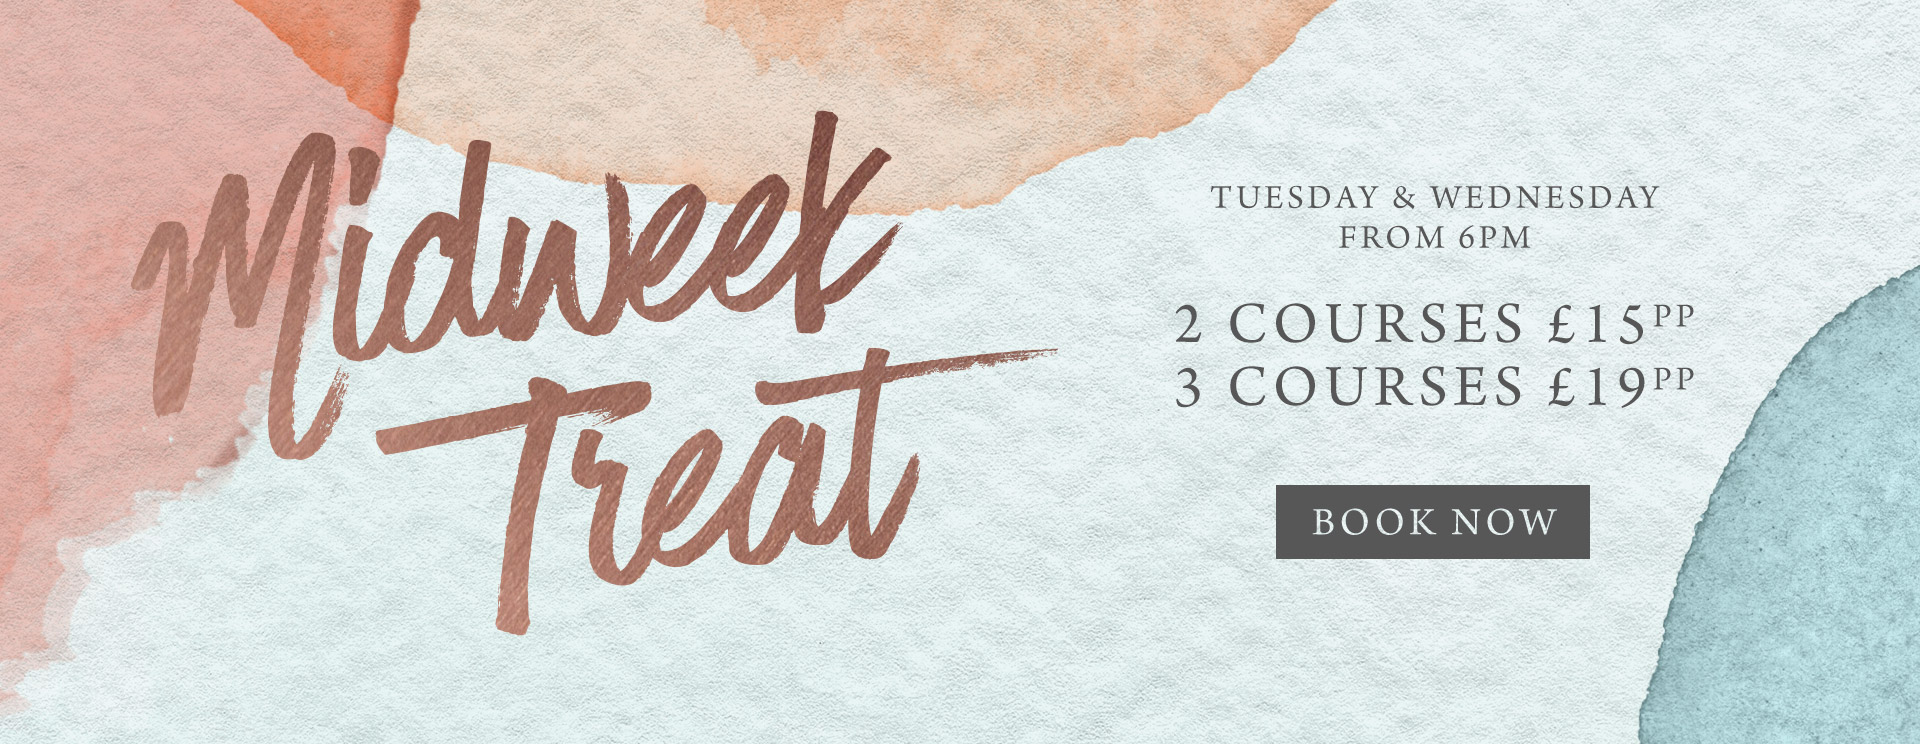 Midweek treat at The Rams Head - Book now